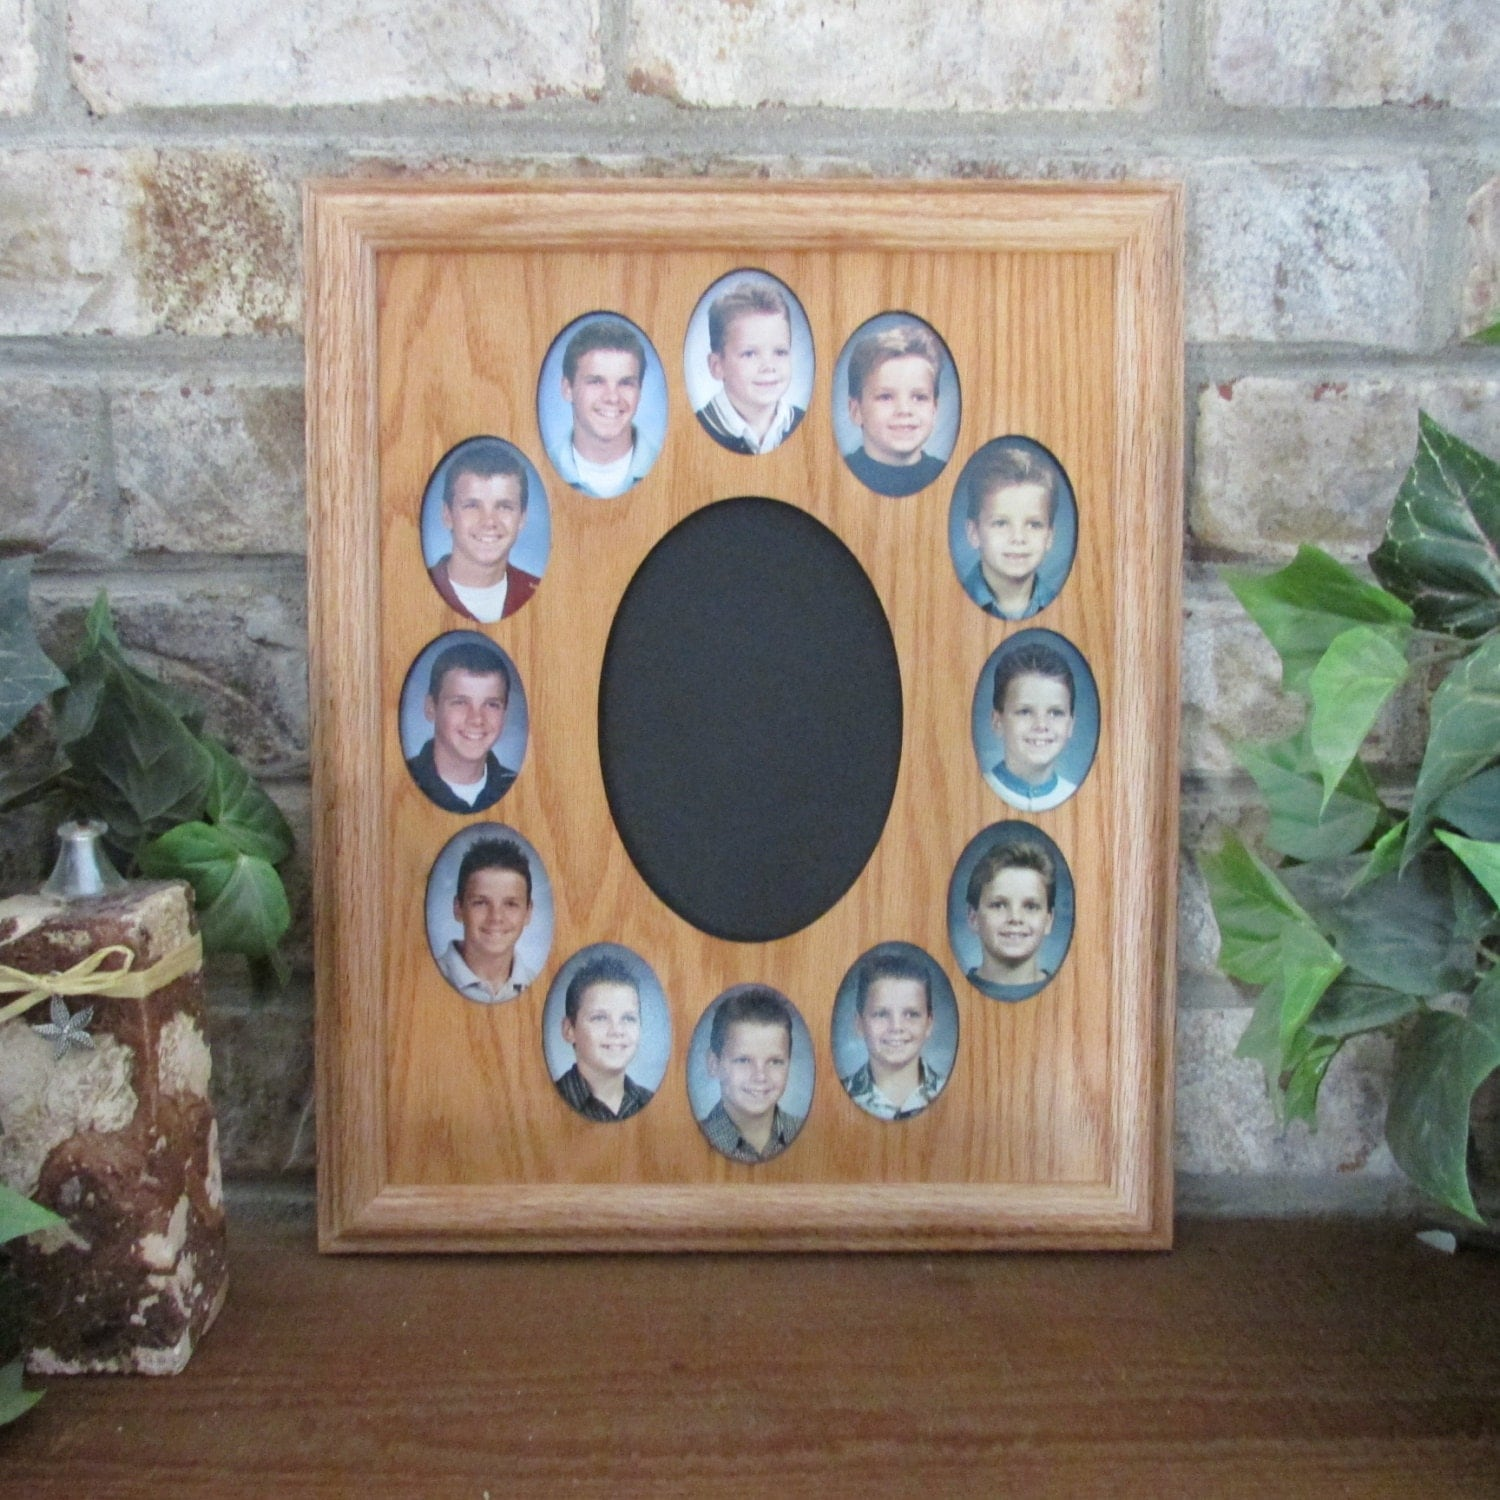 school years collage picture frame k 12 graduation oval 11x14. Black Bedroom Furniture Sets. Home Design Ideas